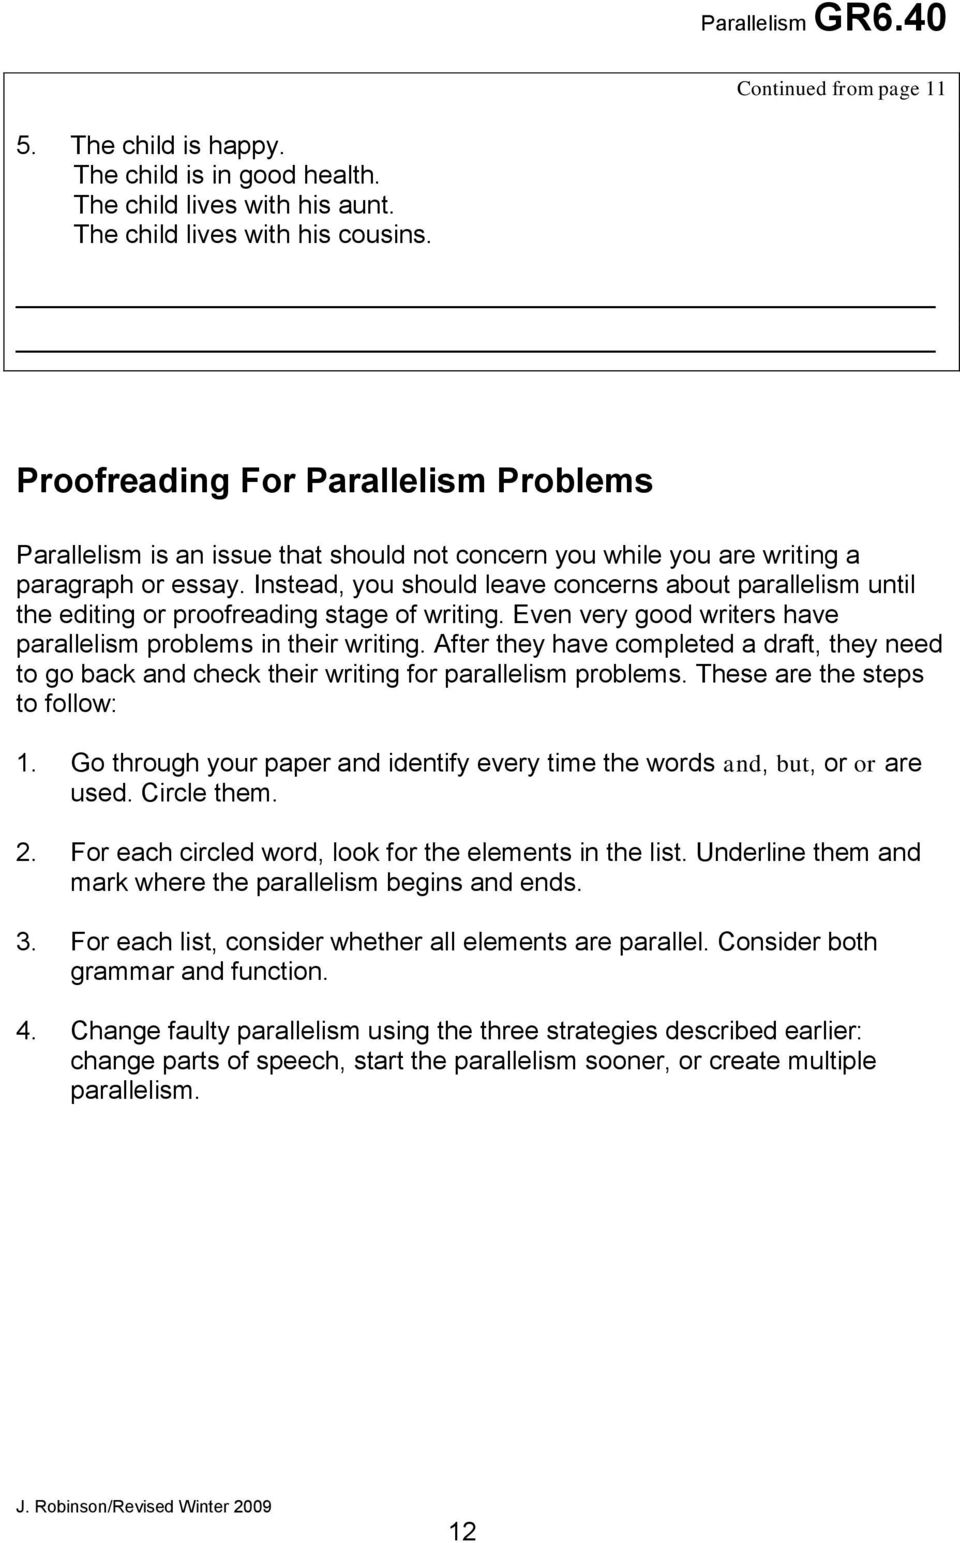 Learning Centre Parallelism Pdf